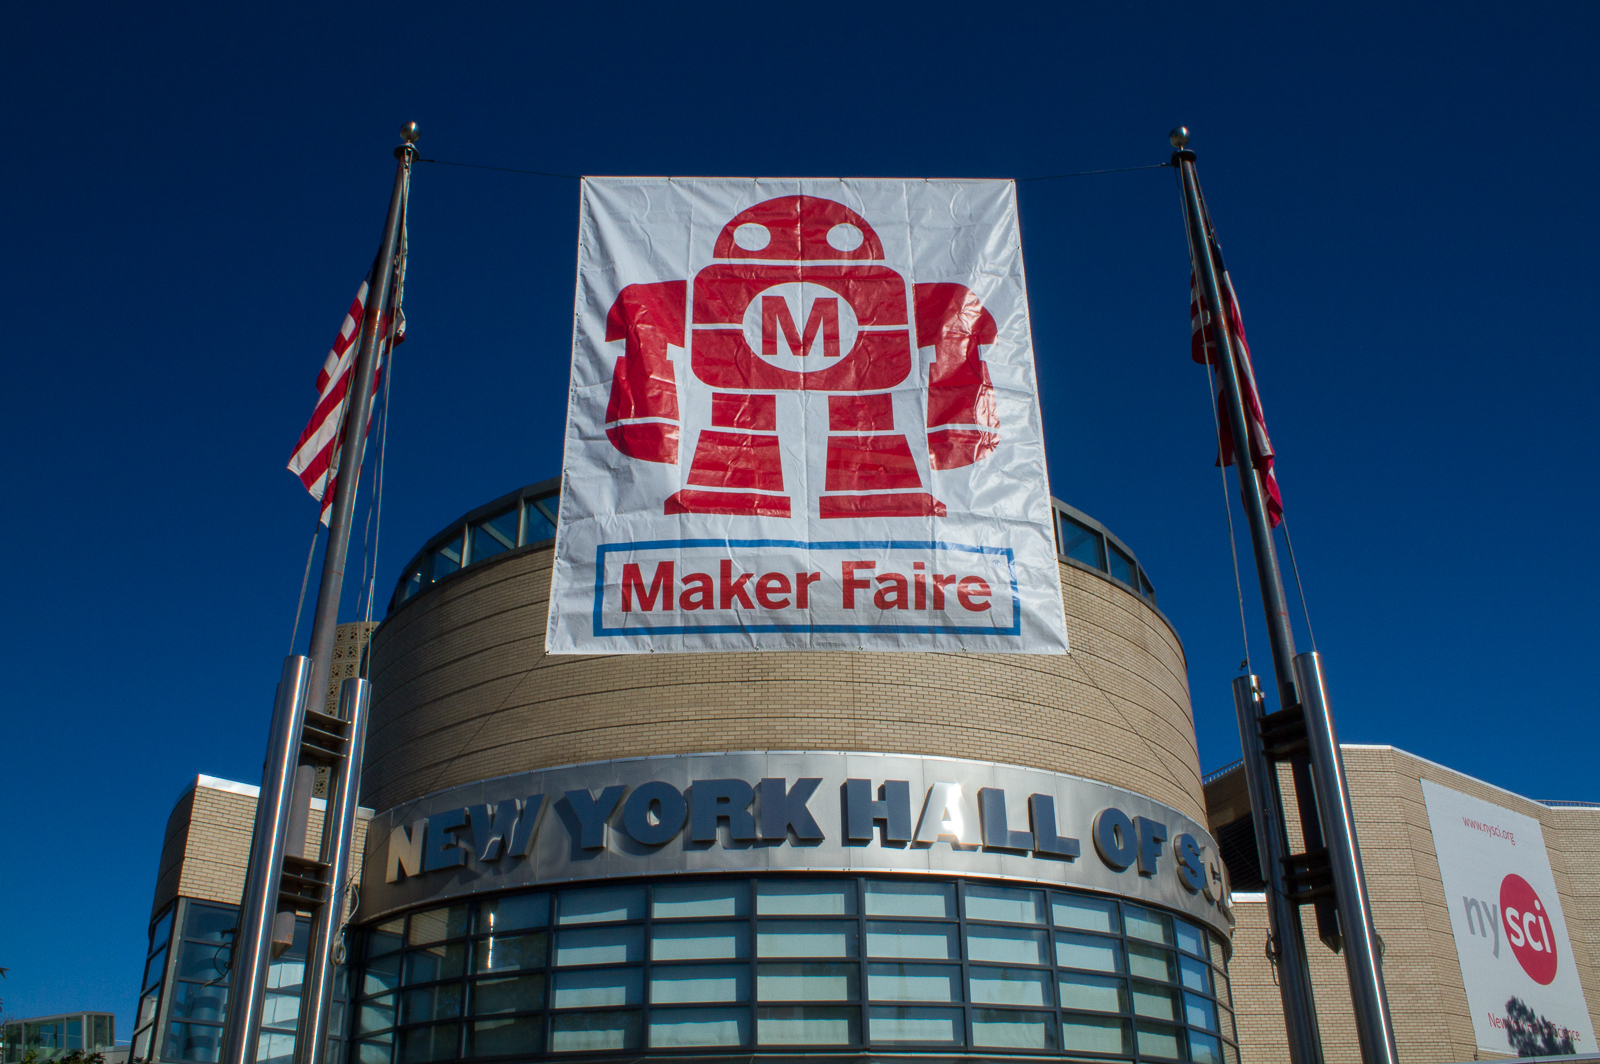 World Maker Faire NY: Behind-the-Scenes Action